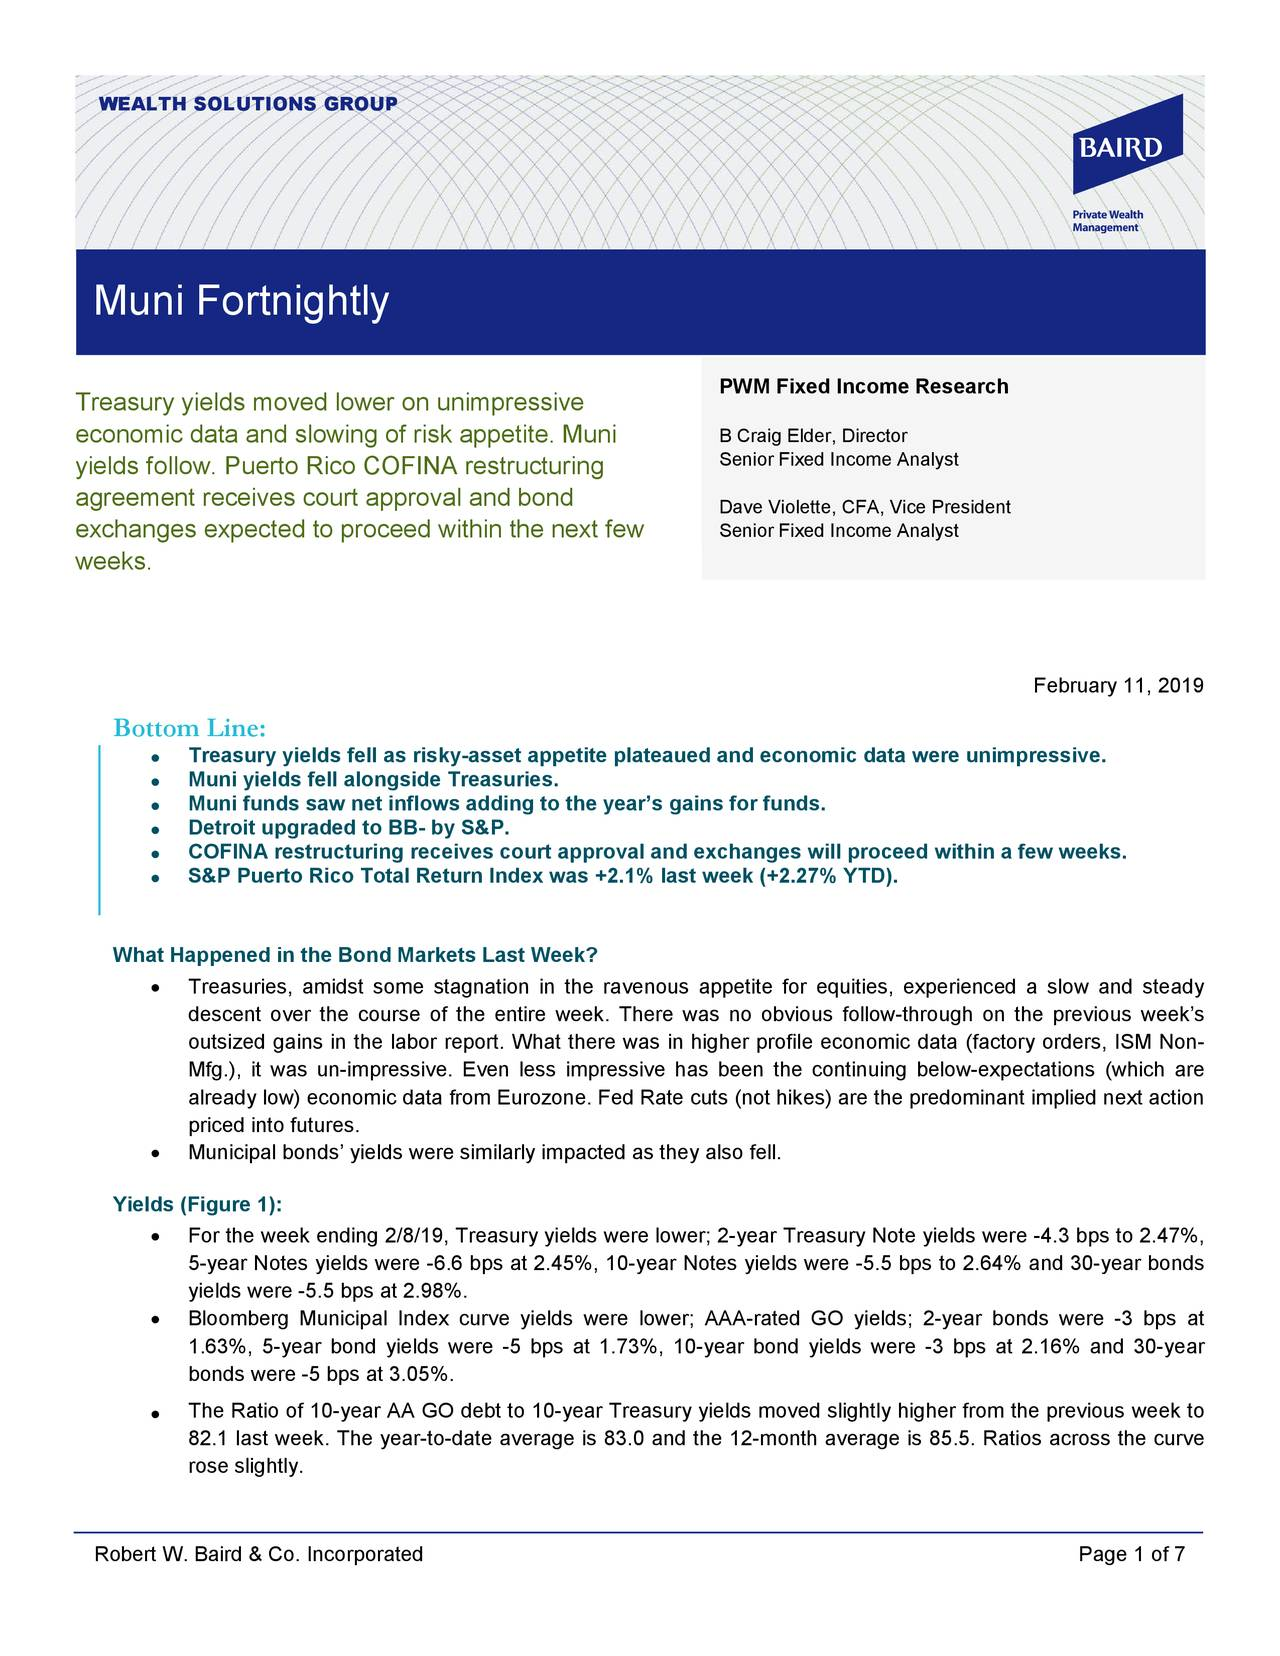 Muni Fortnightly PWM Fixed Income Research Treasury yields moved lower on unimpressive economic data and slowing of risk appetite. Muni David N. Violette, CFA, Vice President yields follow. Puerto Rico COFINA restructuring Senior Fixed Income Analyst agreement receives court approval and bond Dave Violette, CFA, Vice President exchanges expected to proceed within the next few Senior Fixed Income Analyst weeks. February 11, 2019 Bottom Line: • Treasury yields fell as risky-asset appetite plateaued and economic data were unimpressive. • Muni yields fell alongside Treasuries. • Muni funds saw net inflows adding to the year's gains for funds. • Detroit upgraded to BB- by S&P. • COFINA restructuring receives court approval and exchanges will proceed within a few weeks. • S&P Puerto Rico Total Return Index was +2.1% last week (+2.27% YTD). What Happened in the Bond Markets Last Week? • Treasuries, amidst some stagnation in the ravenous appetite for equities, experienced a slow and steady descent over the course of the entire week. There was no obvious follow -through on the previous week's outsized gains in the labor report. What there was in higher profile economic data (factory orders, ISM No- Mfg.), it was un- impressive. Even less impressive has been the continuing below -expectations (which are already low) economic data from Eurozone. Fed Rate cuts (not hikes) are the predominant implied next action priced into futures. • Municipal bonds' yields were similarly impacted as they also fell. Yields (Figure 1): • For the week ending 2/8/19, Treasury yields were lower; 2- year Treasury Note yields were -4.3 bps to 2.47%, 5-year Notes yields were -6.6 bps at 2.45%, 10-year Notes yields were -5.5 bps to 2.64% and 30-year bonds yields were -5.5 bps at 2.98%. • Bloomberg Municipal Index curve yields were lower; AAA -rated GO yields; 2- year bonds were - 3 bps at 1.63%, 5-year bond yields were - 5 bps at 1.73%, 10- year bond yields were -3 bps at 2.16% and 30- year bonds were -5 bps at 3.05%. • The Ratio of 10-year AA GO debt to 10-year Treasury yields moved slightly higher from the previous week to 82.1 last week. The year-to-date average is 83.0 and the 12-month average is 85.5. Ratios across the curve rose slightly. Robert W. Baird & Co. Incorporated Page 1 of 7